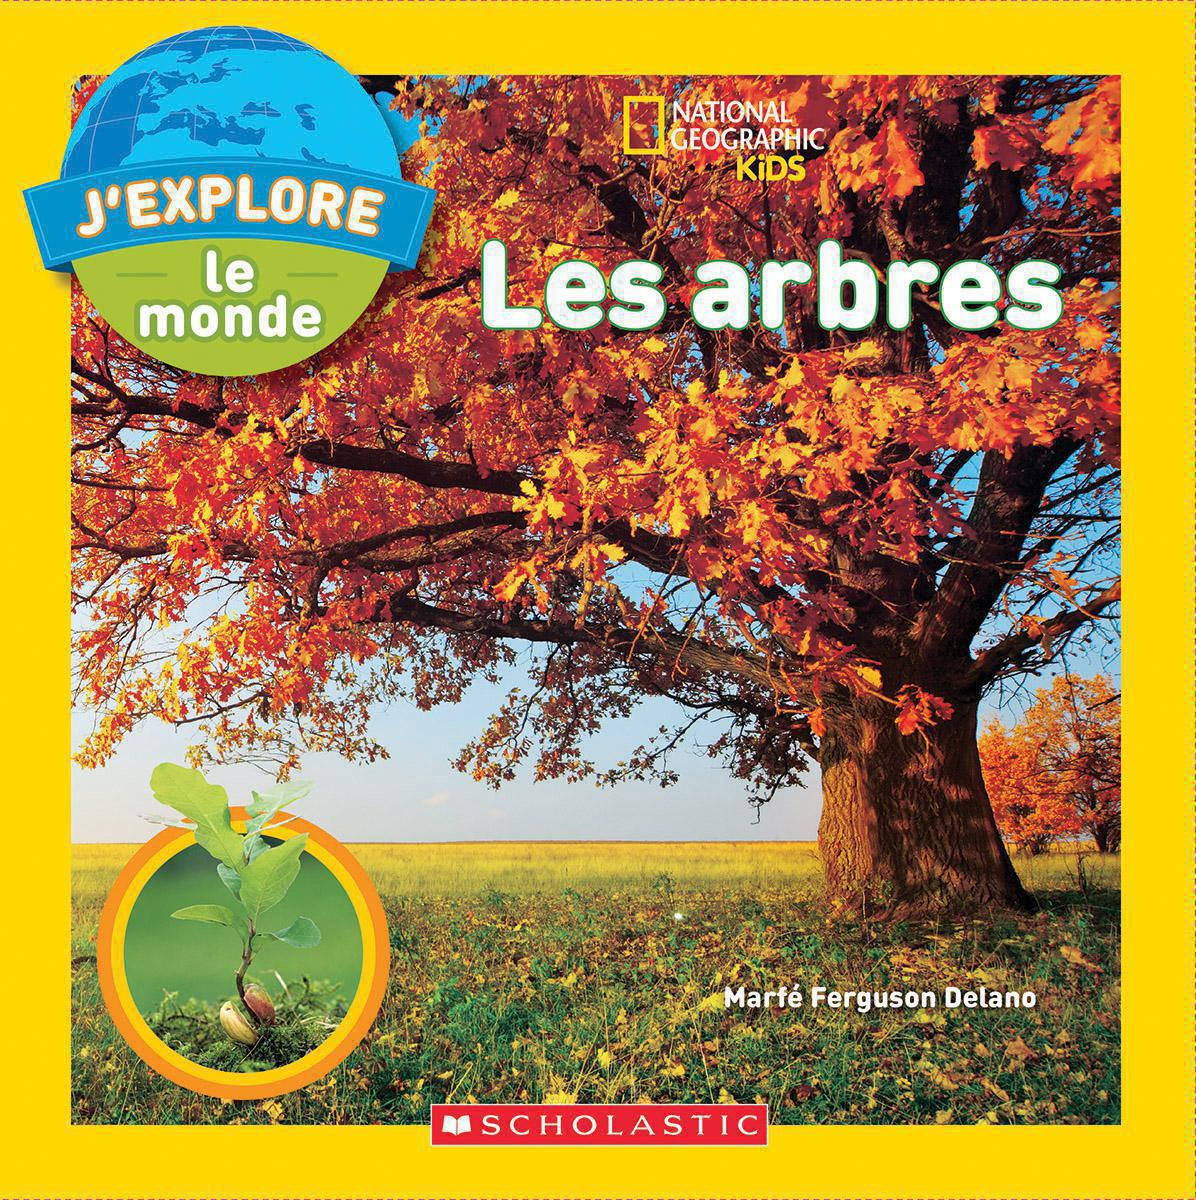 National Geographic Kids : J'explore le monde : Les arbres